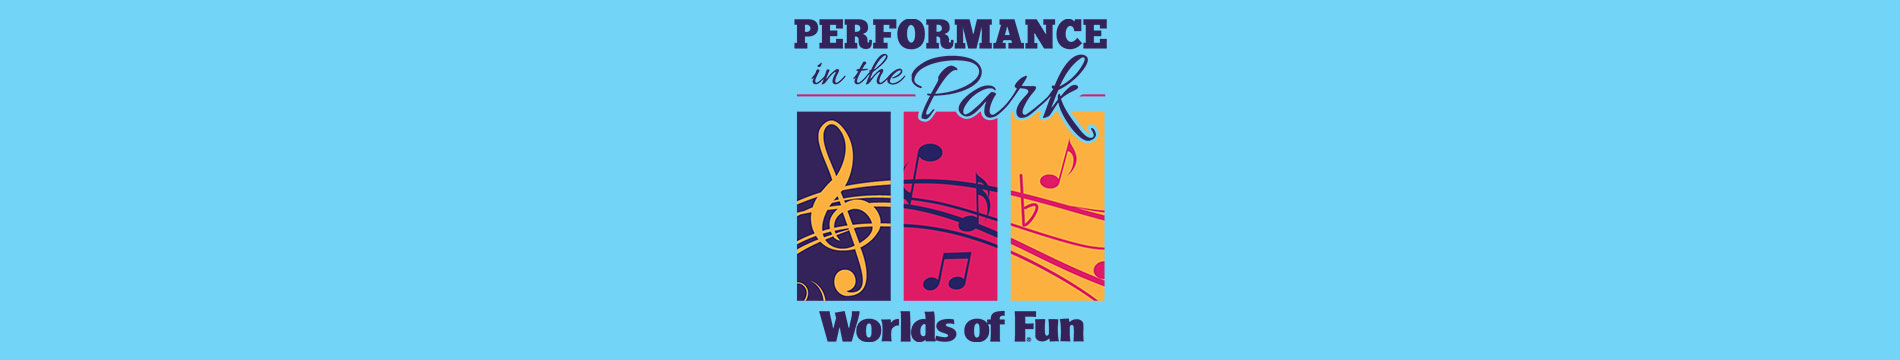 Worlds of Fun Performance in the Park